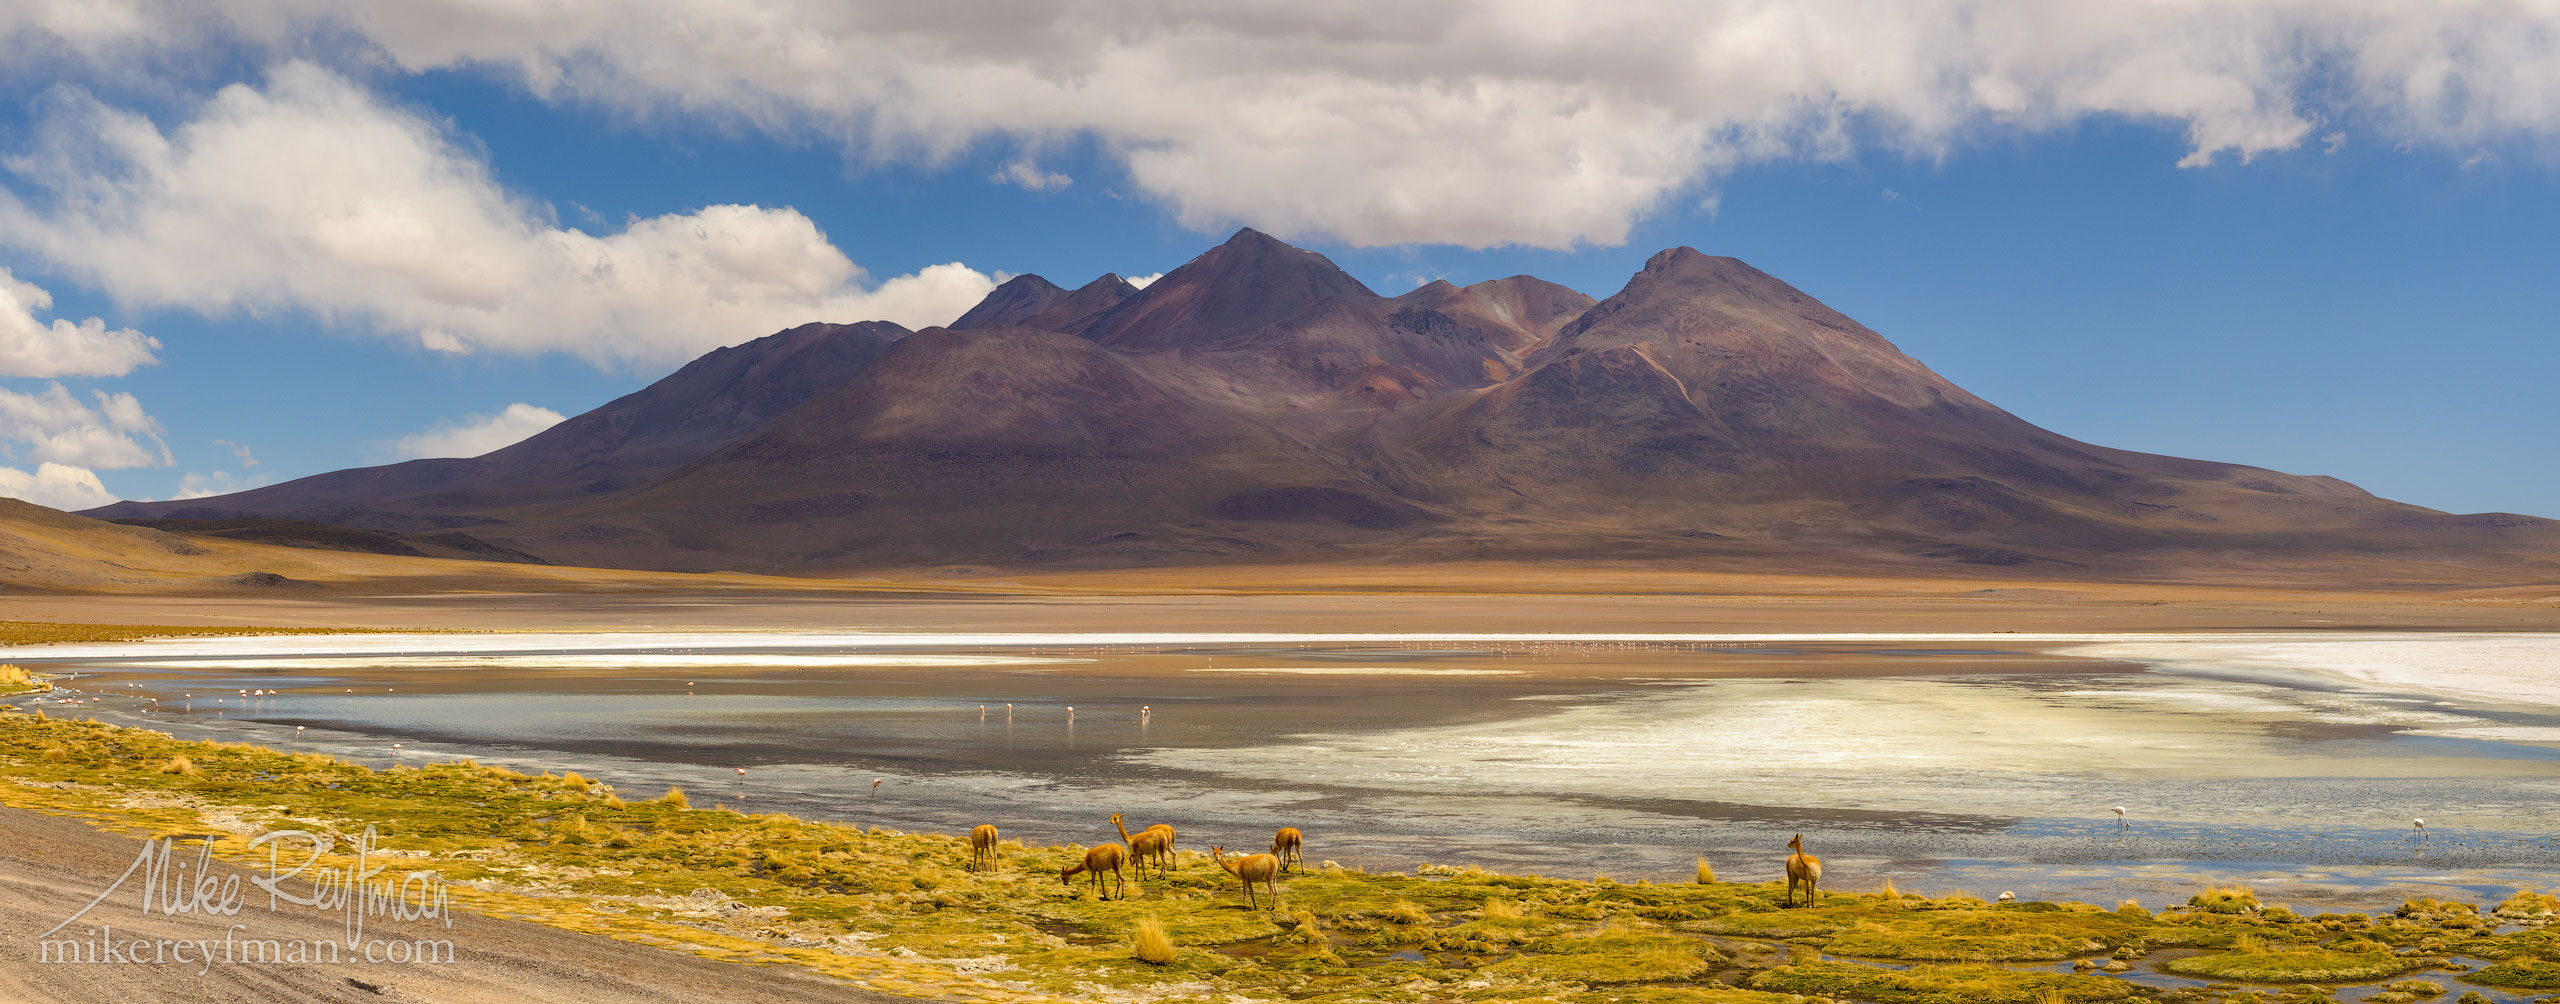 AA1-Q3X1148_Pano_1x2.55 - Atacama and Altiplano. The Driest Desert and The High Plain - Mike Reyfman Photography